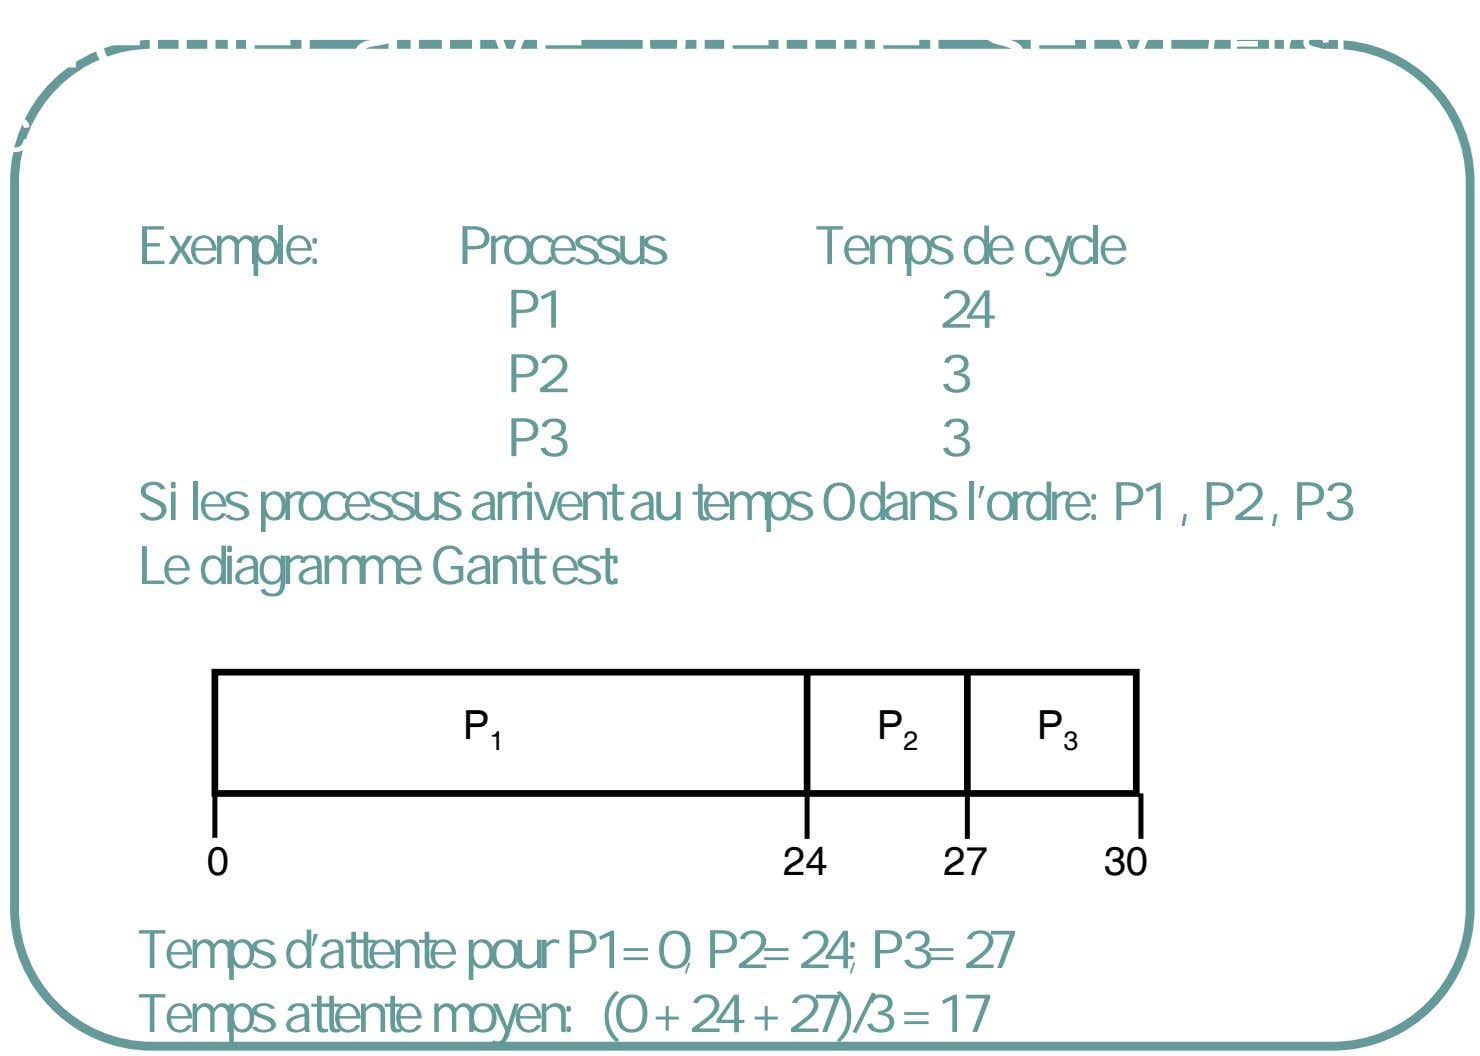 Premier arrive, premier servi (First come, first serve, FCFS) Exemple: Processus Temps de cycle P1 24